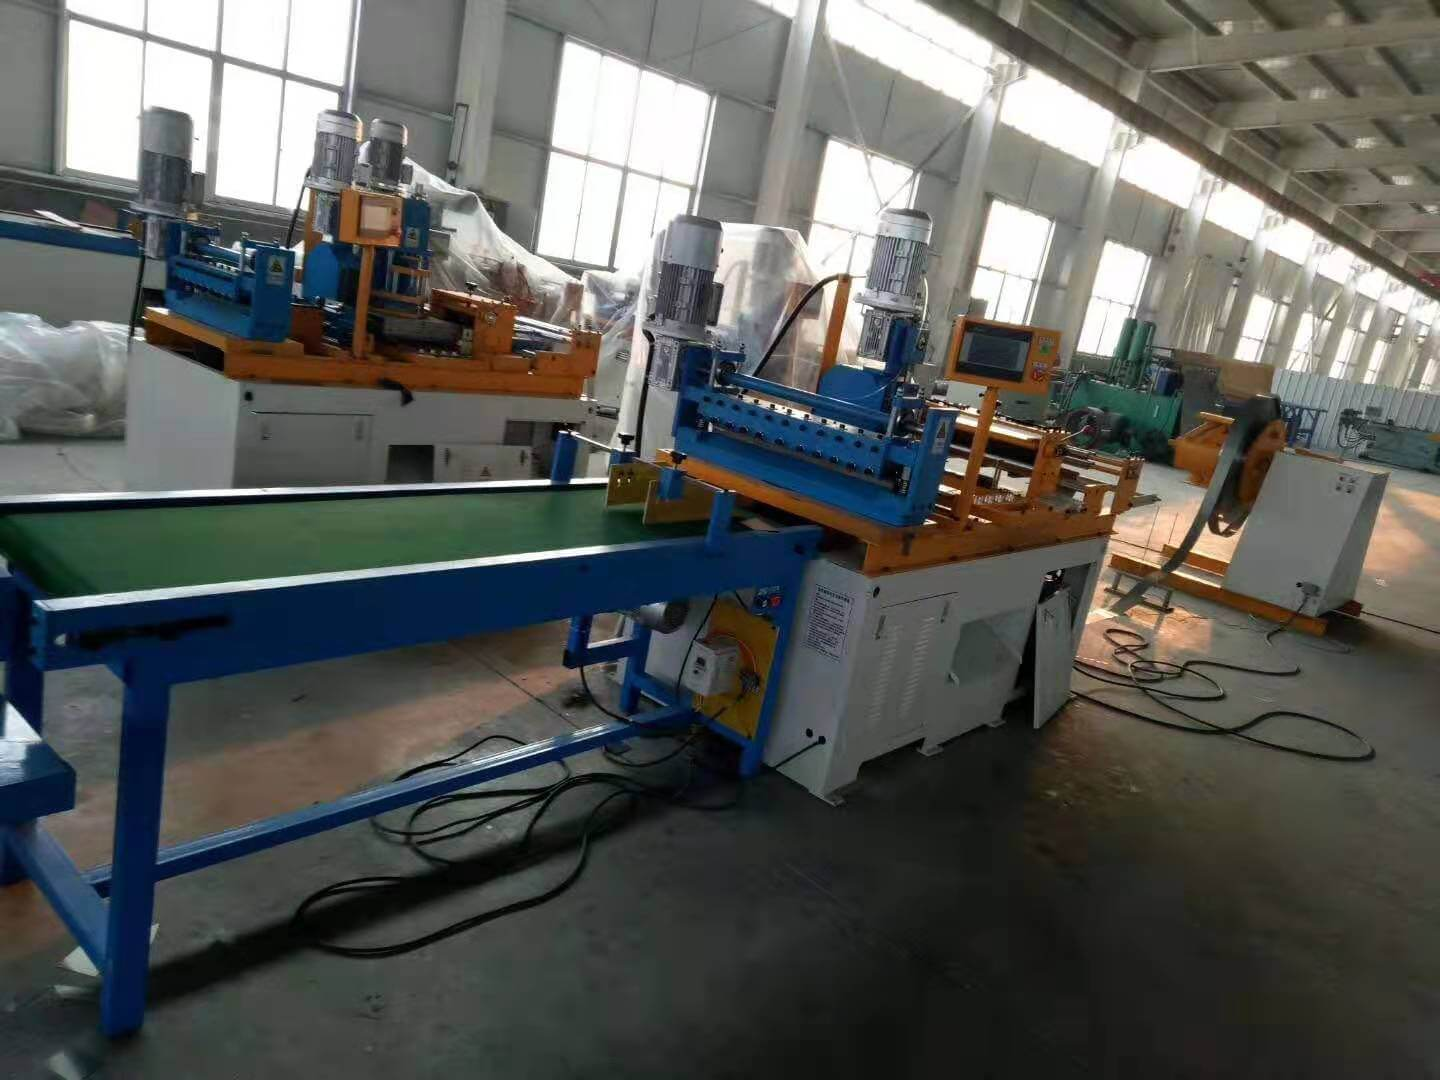 Ausin Pipeline Material&Equipment Co.,Ltd Presents High-end Cutting And Fabrication Machines For Many Industires To Increase Production And Accuracy